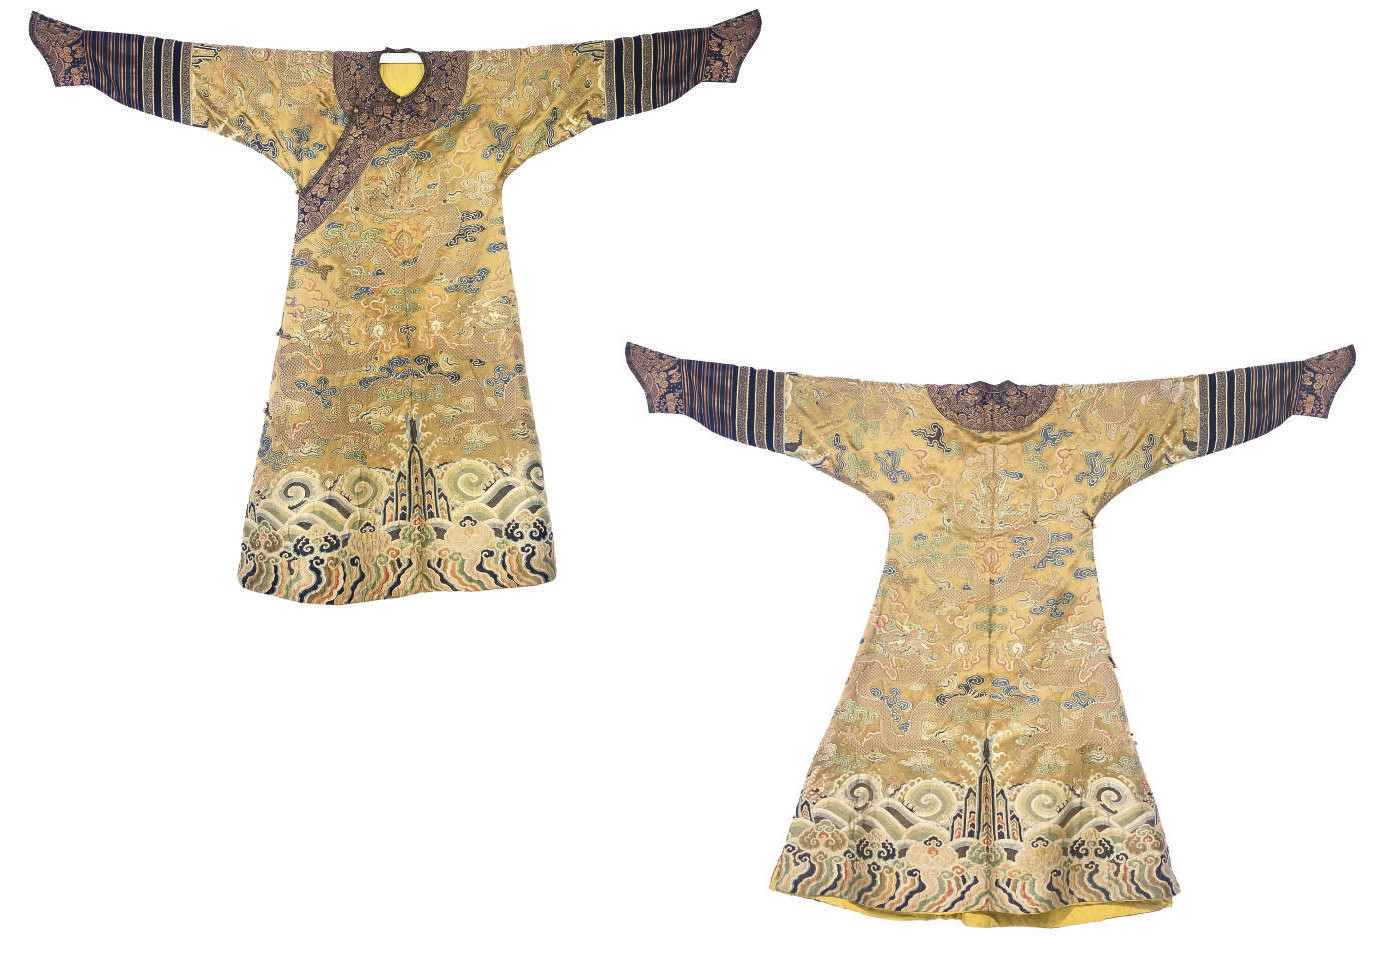 A CHI'FU OR FORMAL COURT ROBE